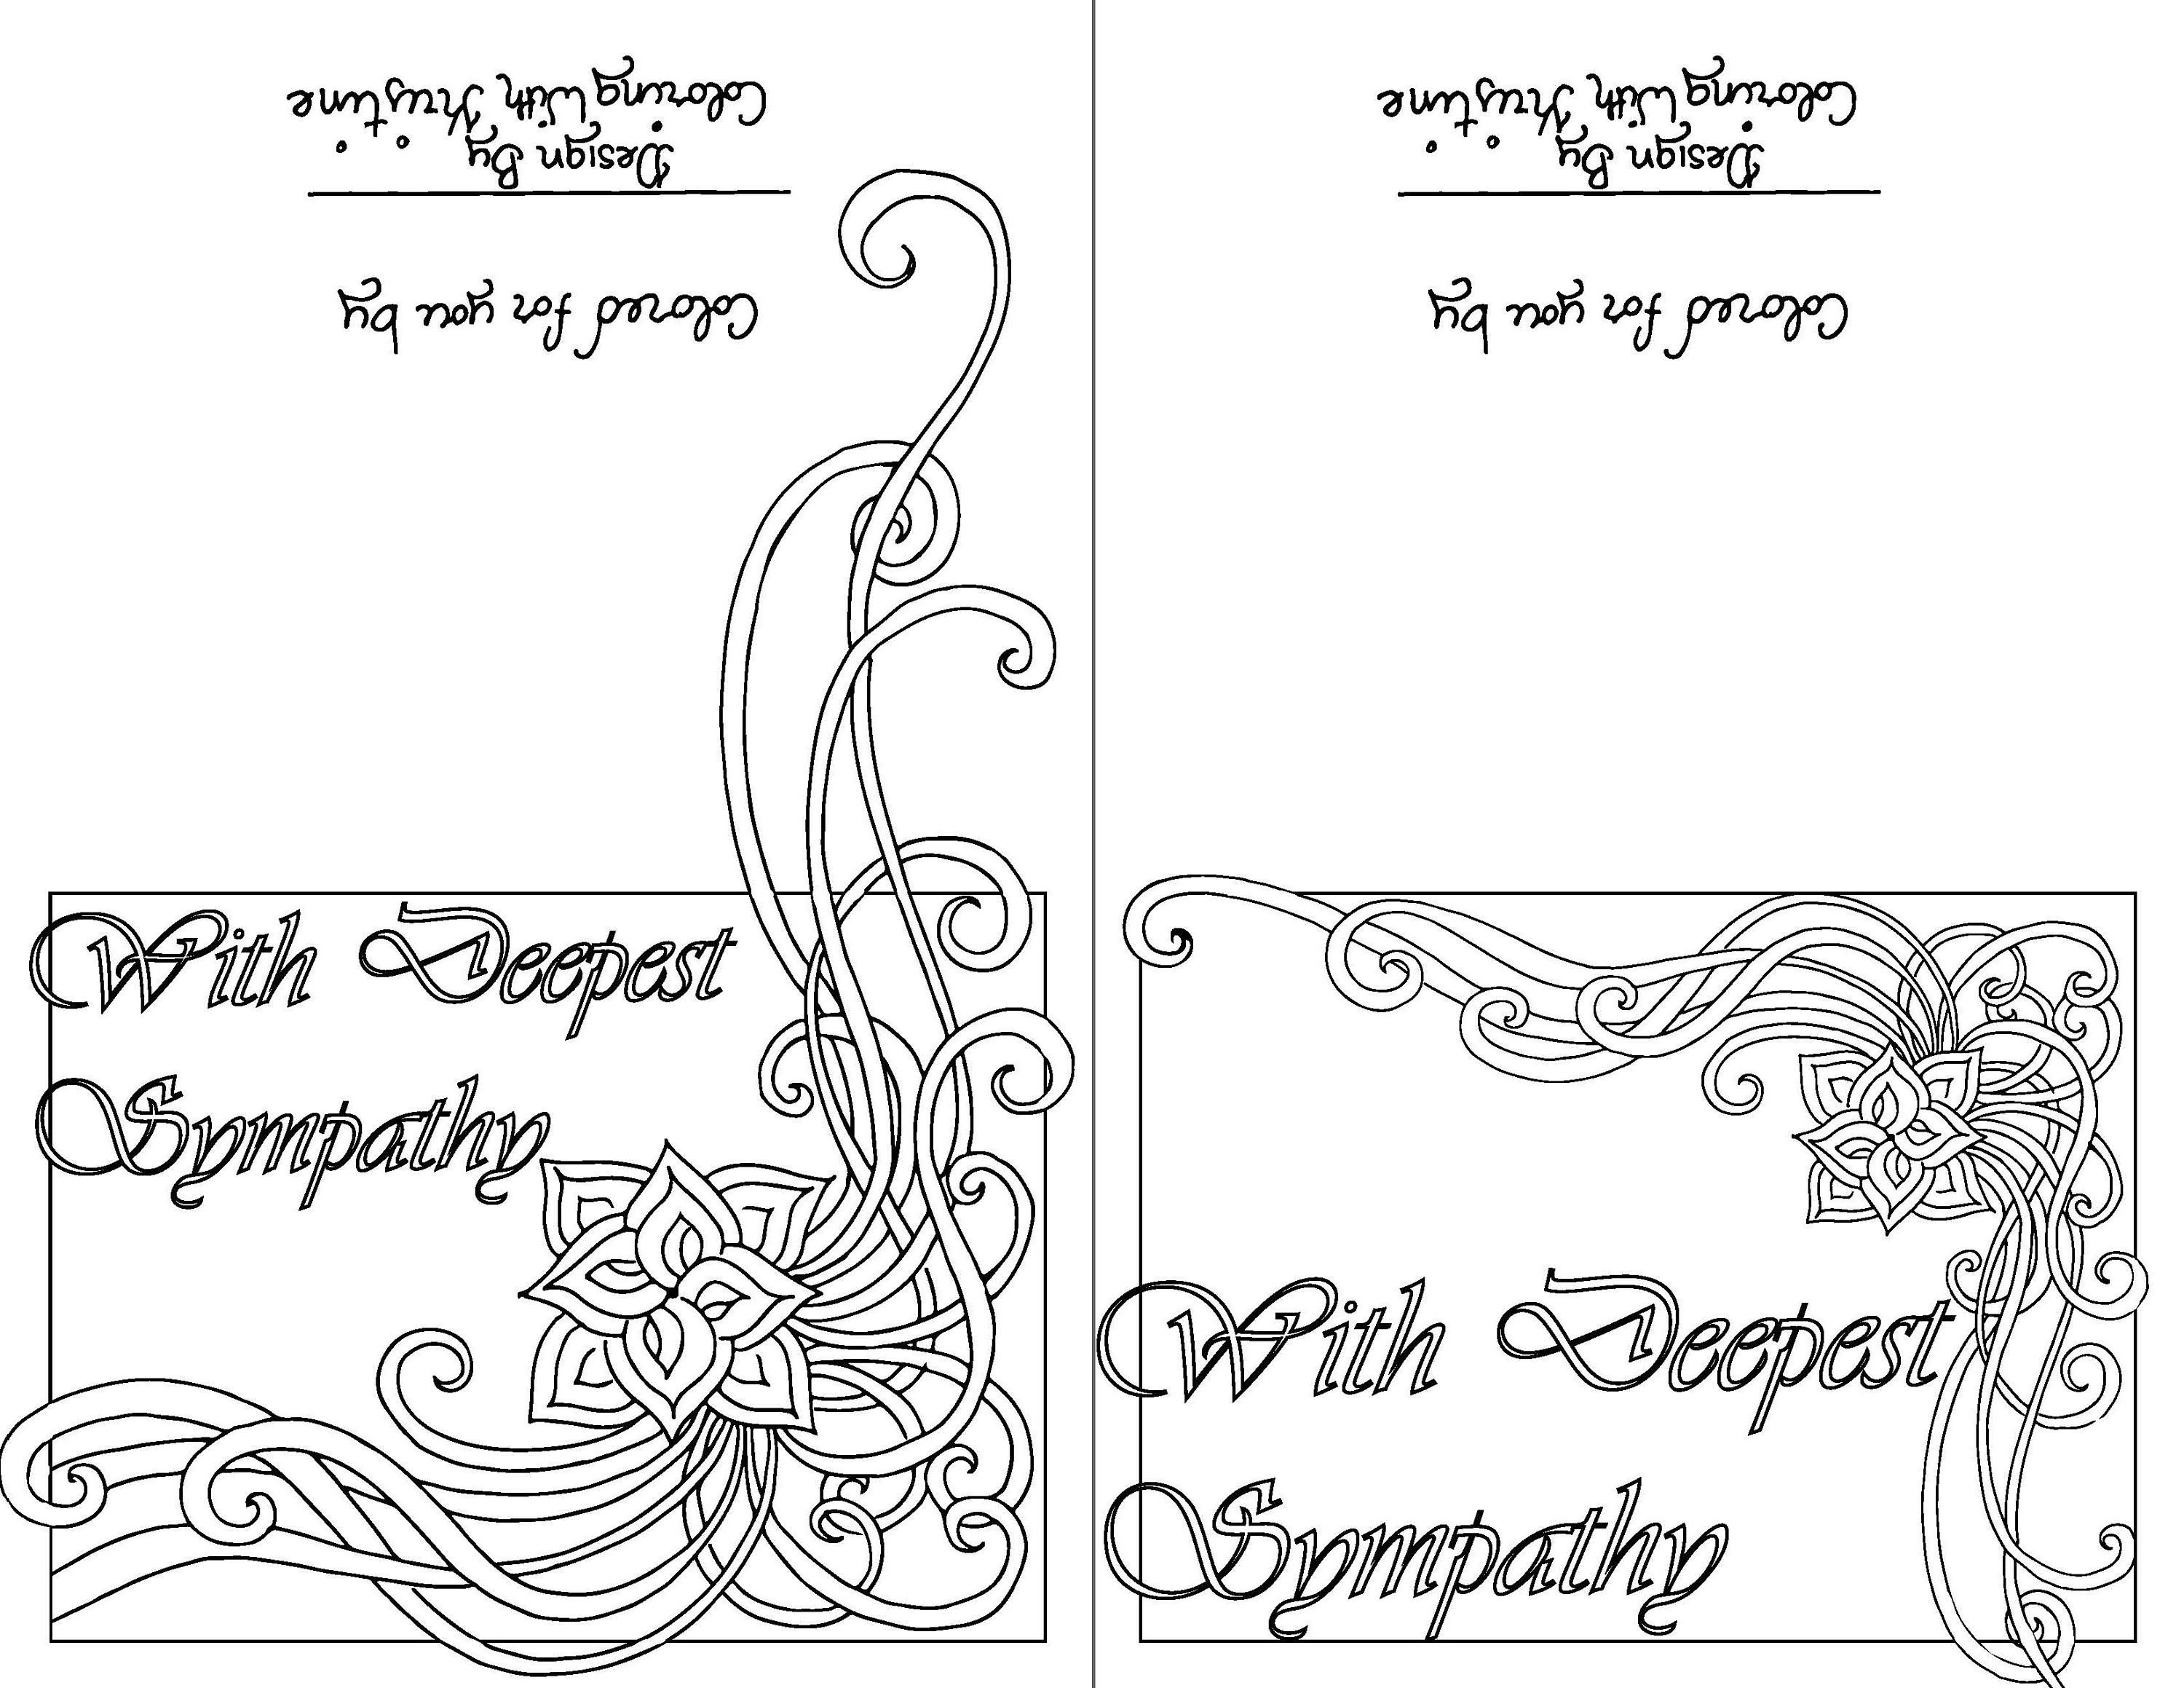 10 Color Your Own Sympathy Card Sets Of Ten Instant Etsy Sympathy Cards Card Set Printable Cards